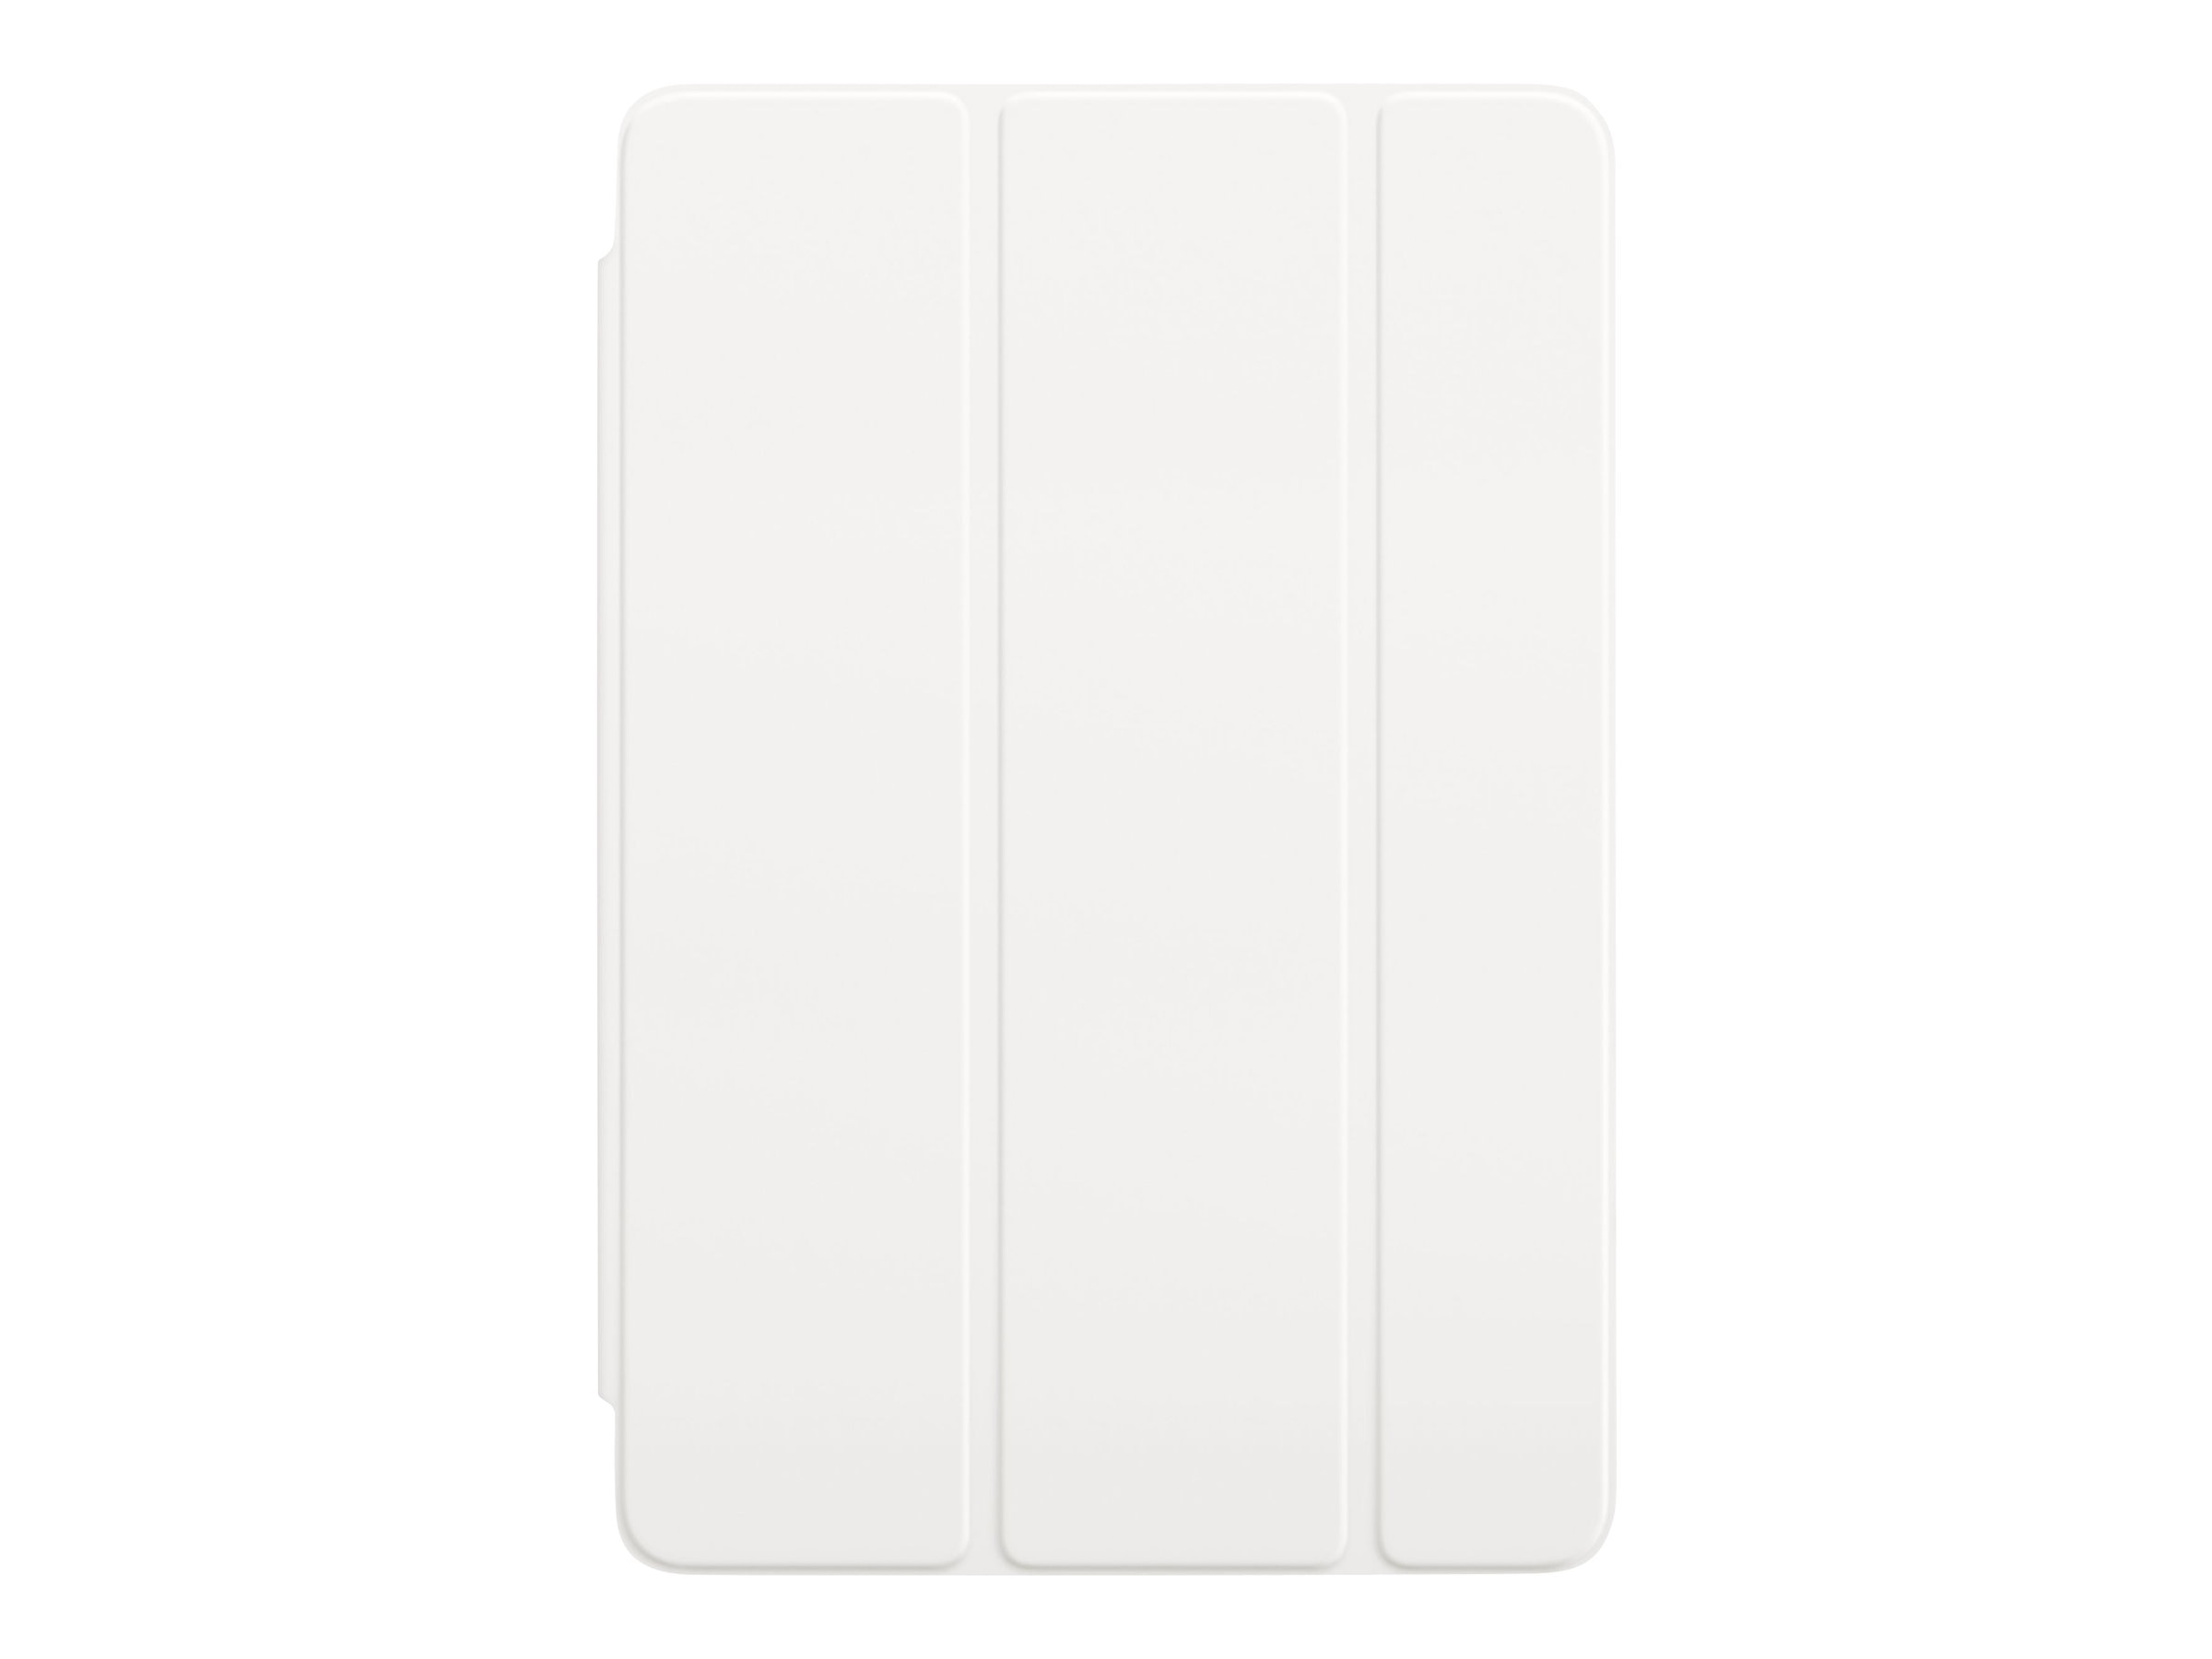 Apple Smart Cover for iPad mini 4, White, MKLW2ZM/A, 32668697, Carrying Cases - Tablets & eReaders